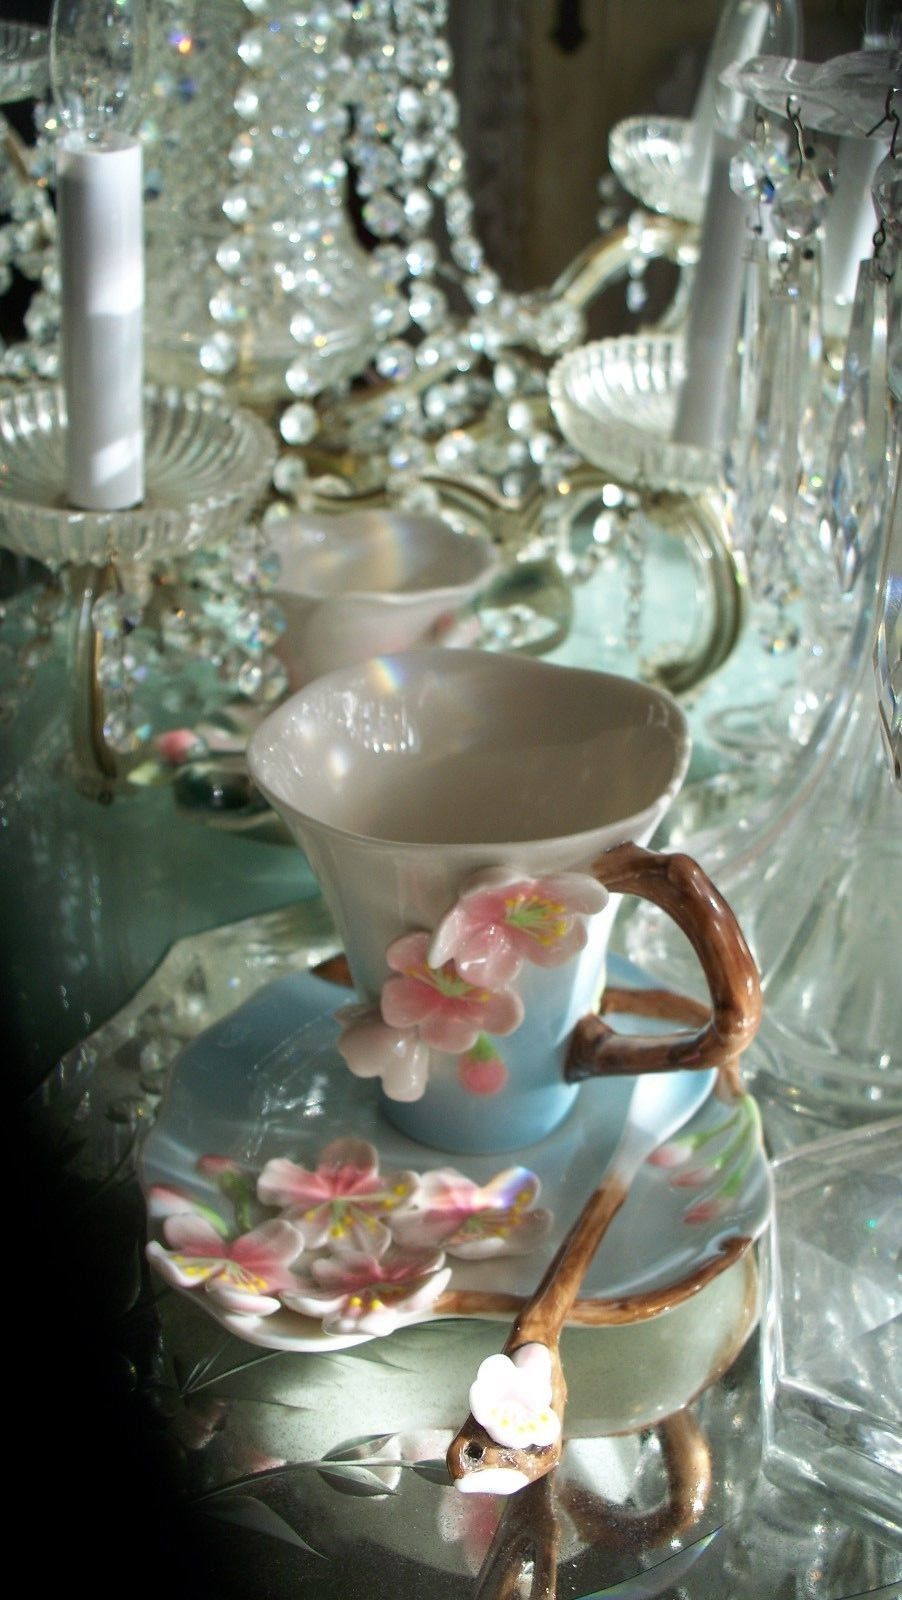 Lovely Garden Cherry Blossom Tea Set